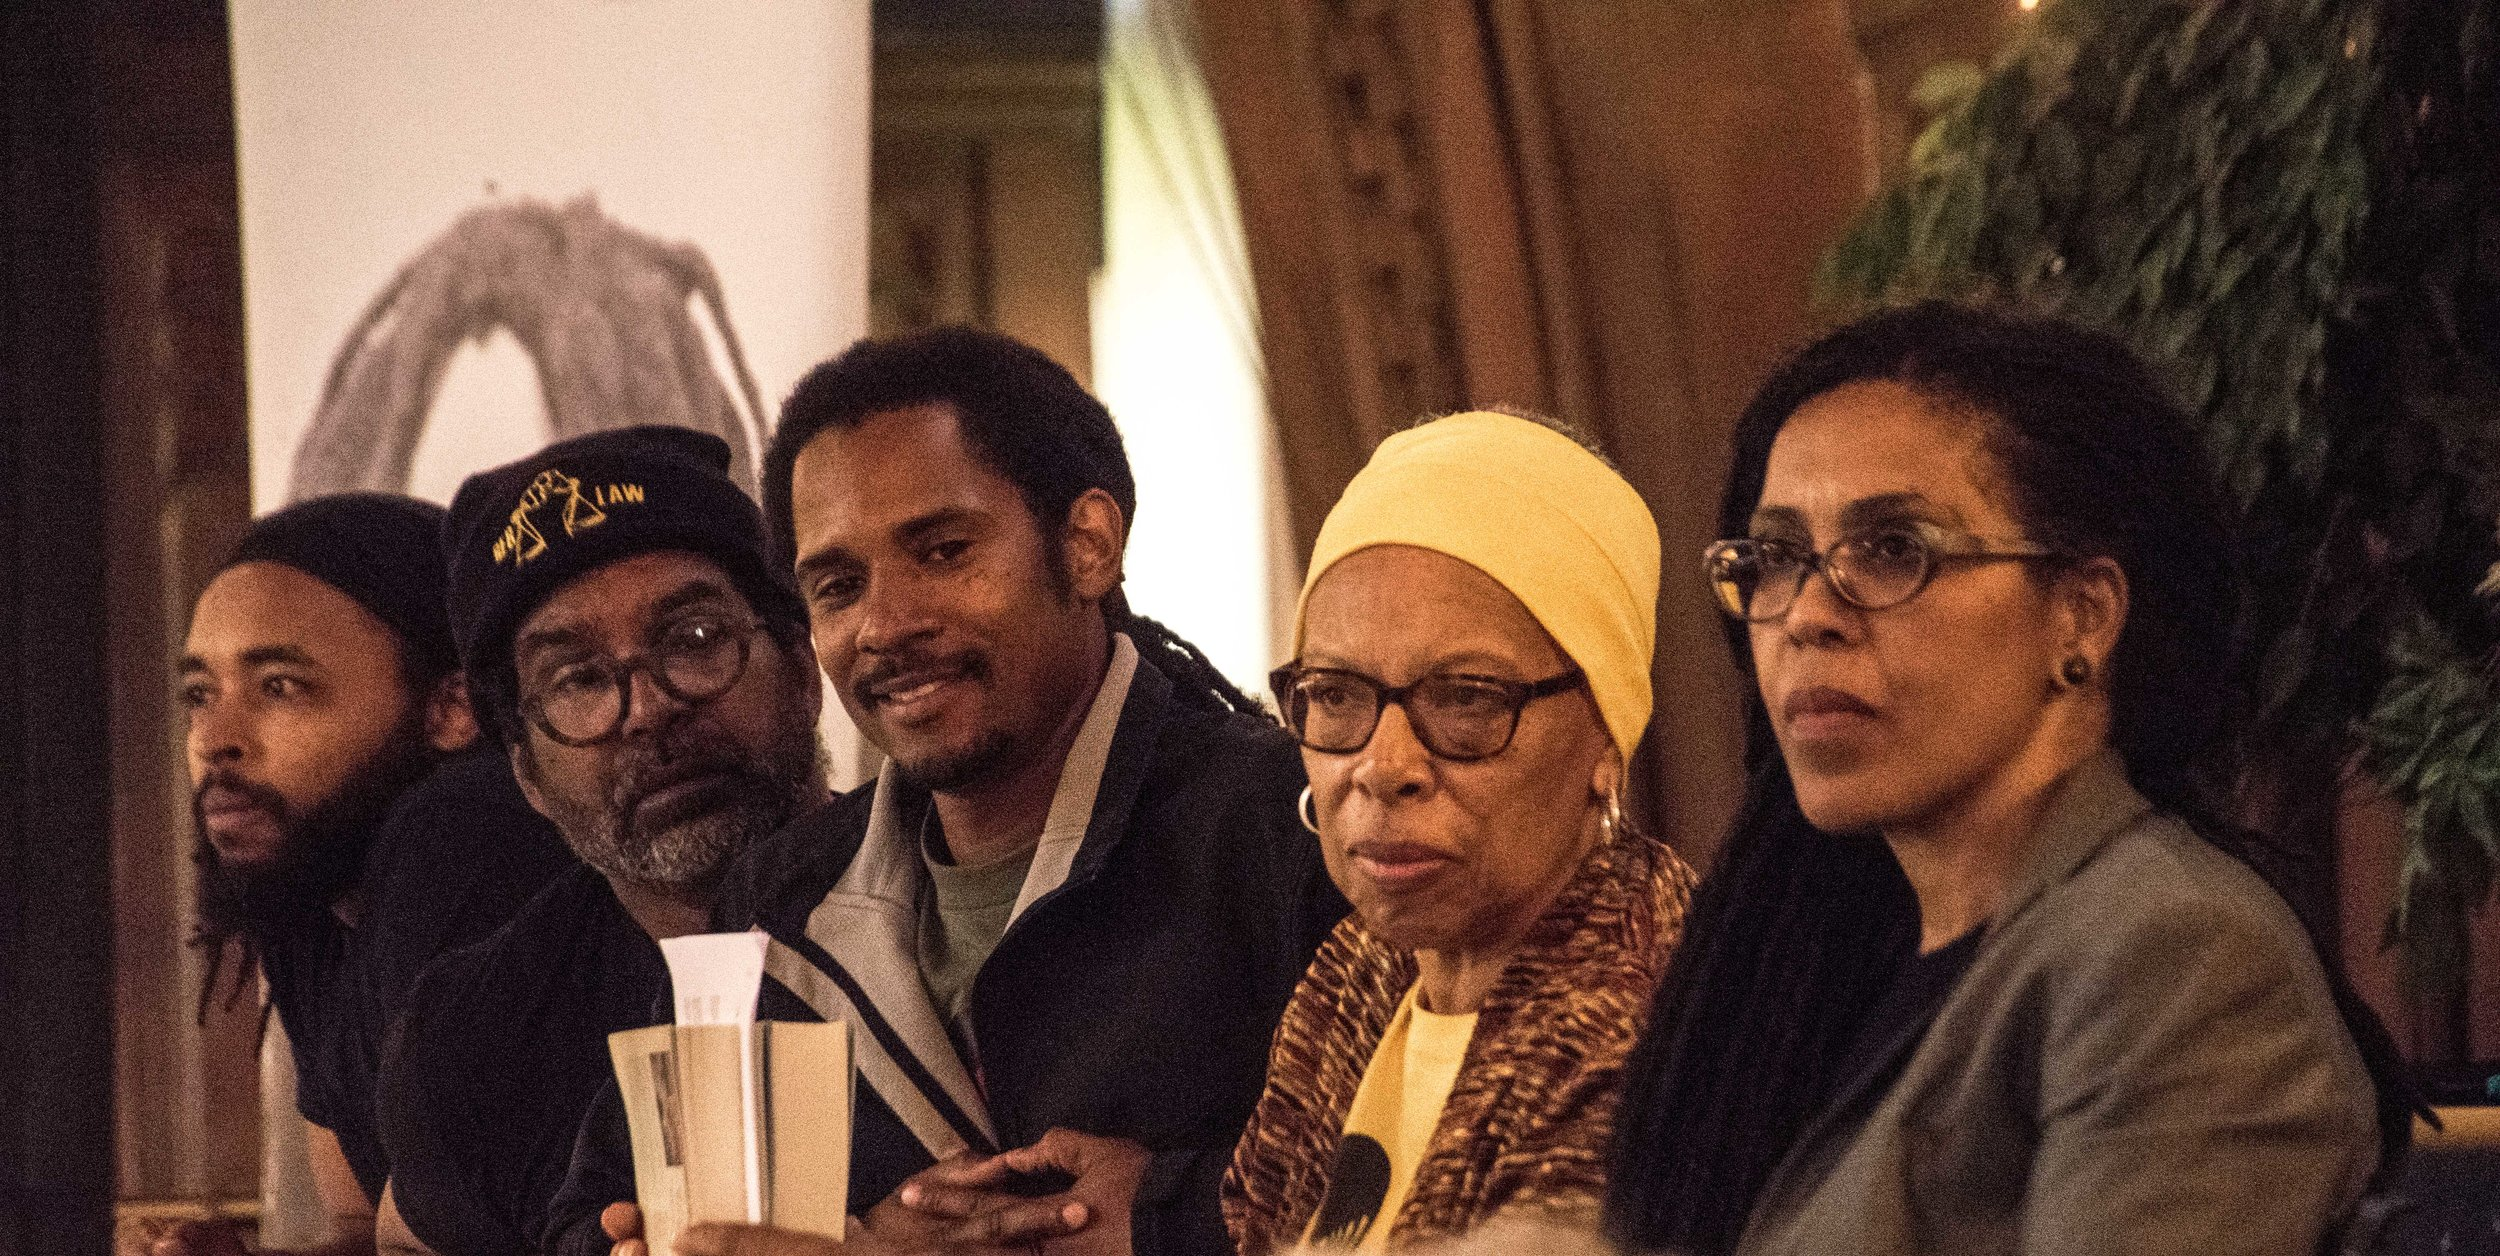 The panelists who read parts of Mumia's new book, Murder Inc, Vol 2, at People's Sanctuary April 27. (L to R) Wayne Cook, Basym Hasan, Mike Africa Jr, Barbara Easley-Cox, Johanna Fernandez  Photo credit - Joe Piette